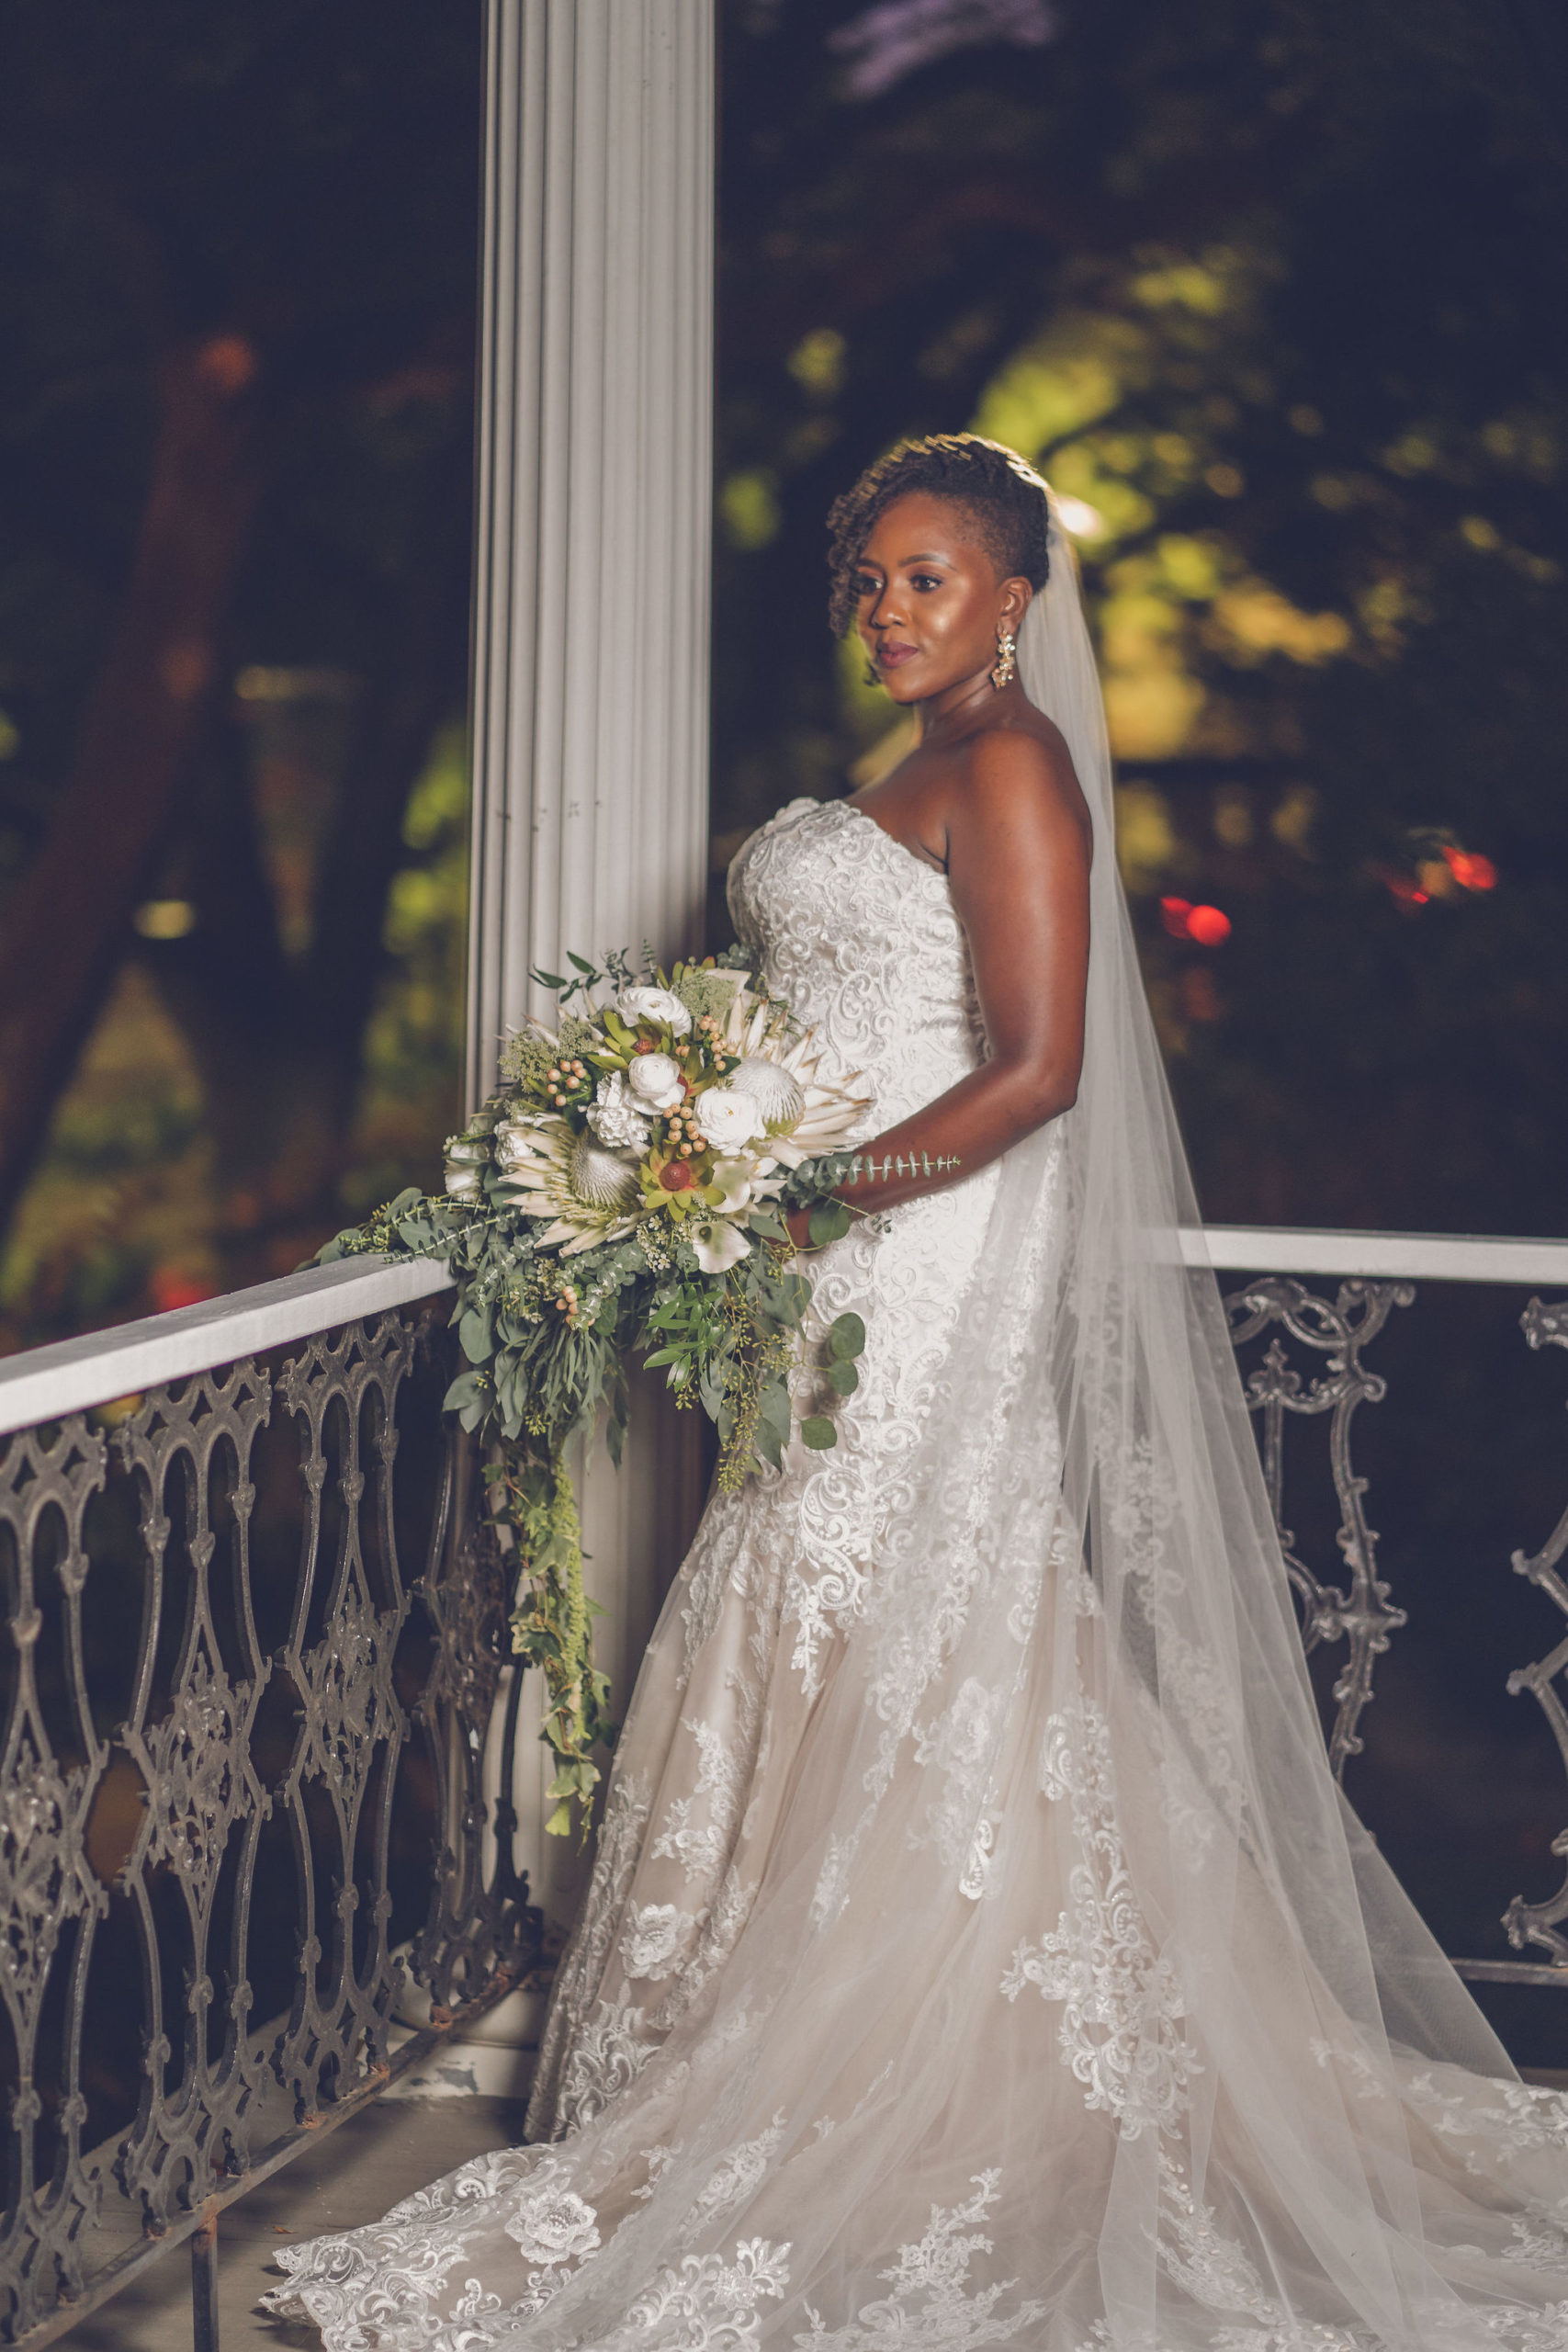 Bride on New Orleans balcony XXI Facets Photography